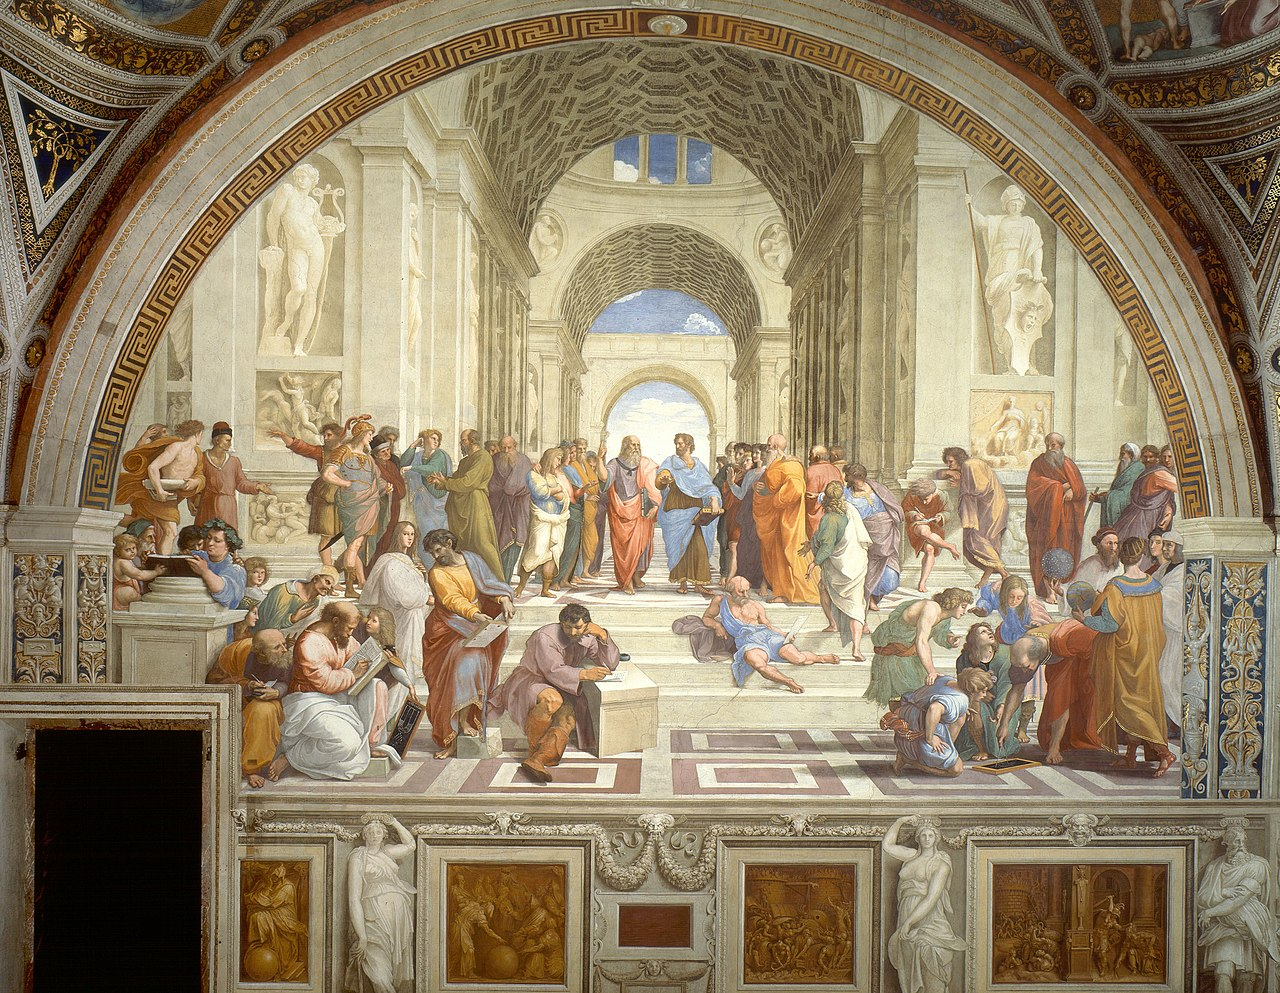 1280px--The_School_of_Athens-_by_Raffaello_Sanzio_da_Urbino.jpg